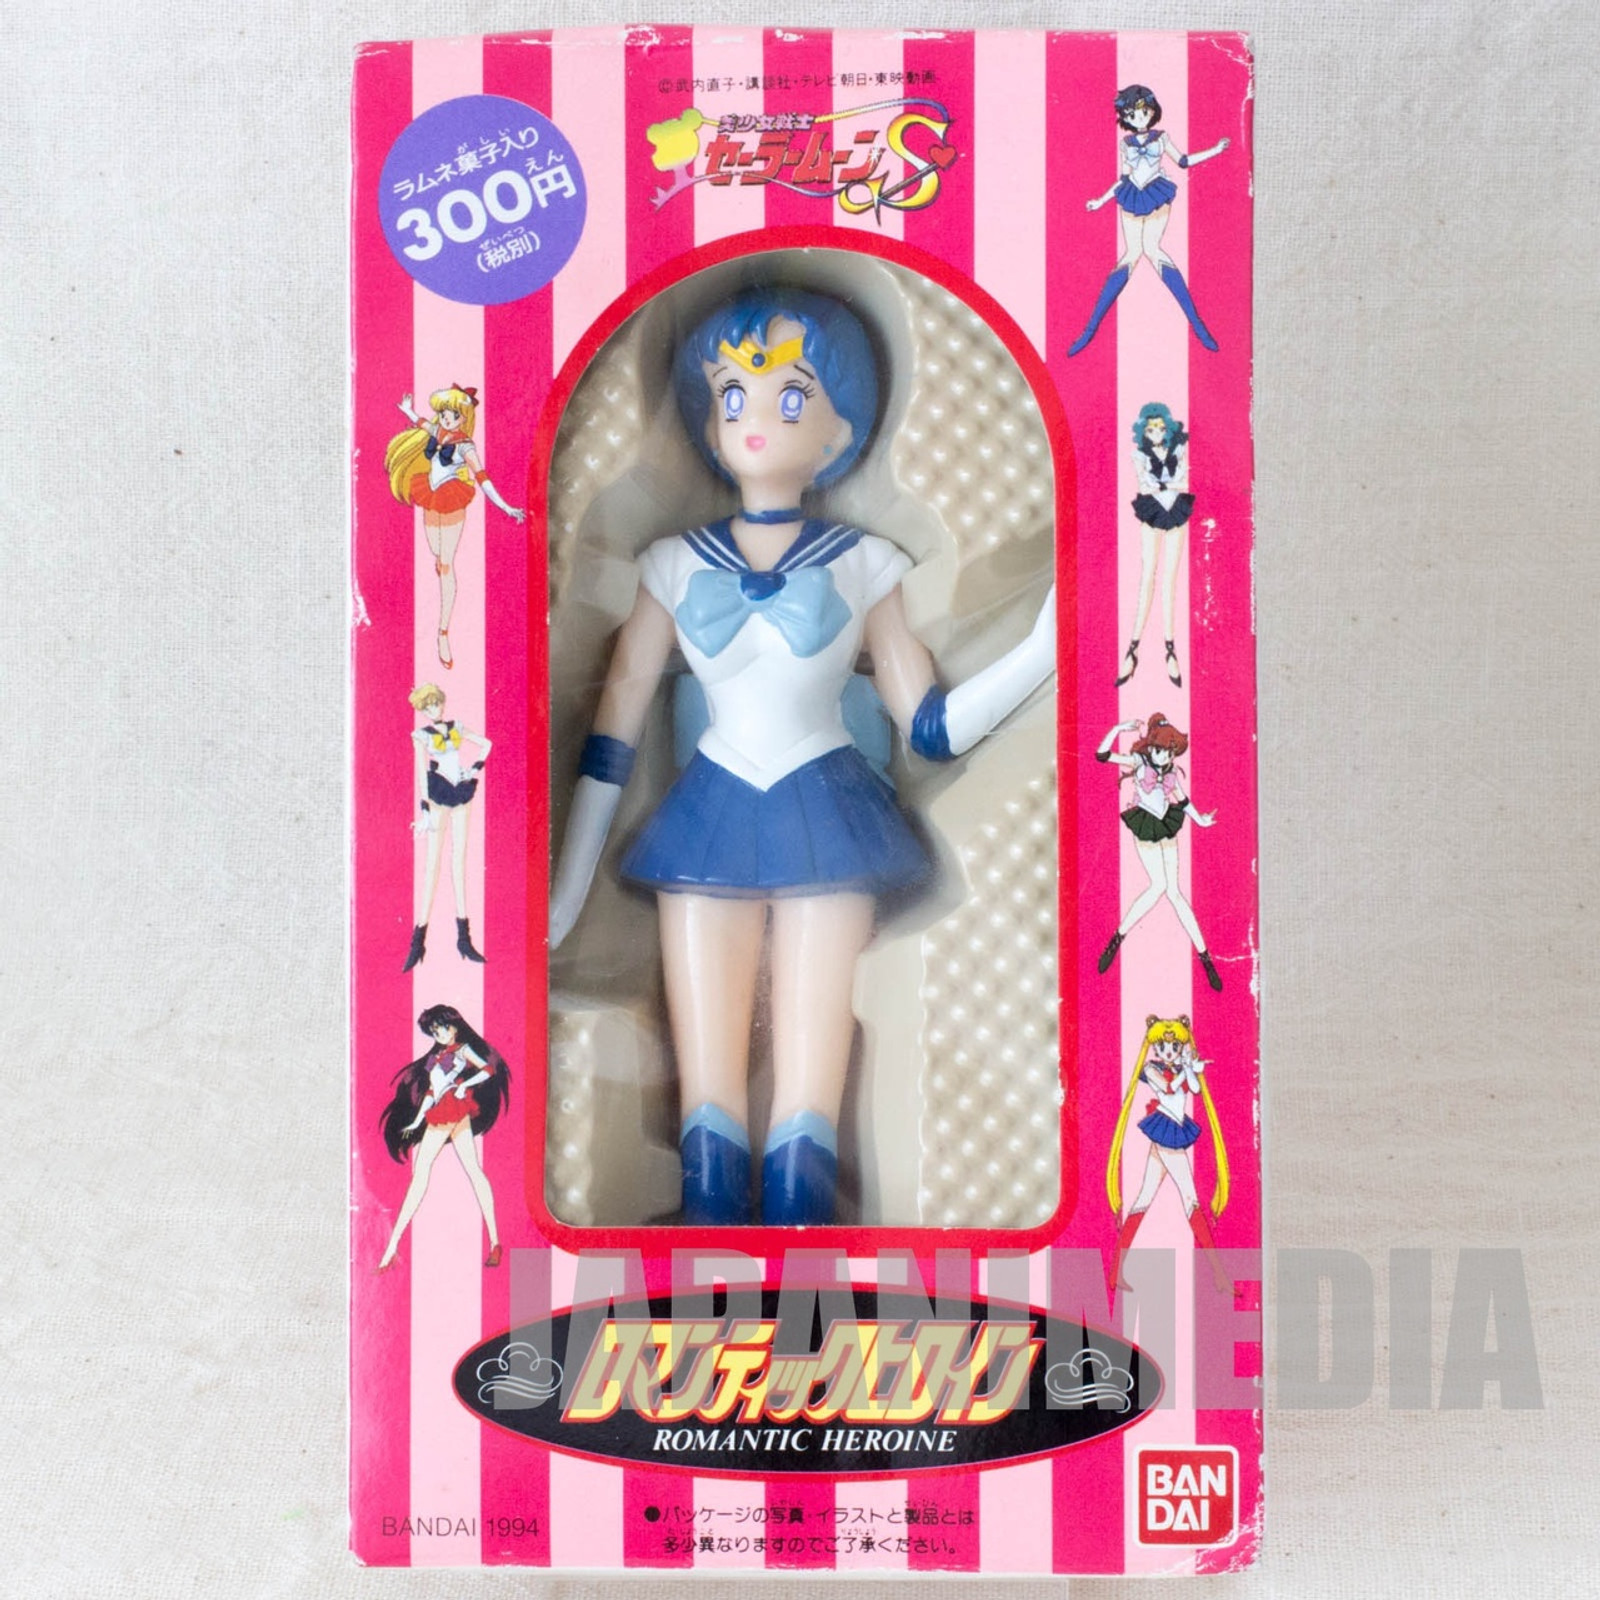 Retro RARE Sailor Moon S Sailor Mercury (Ami Mizuno) Romantic heroine Figure BANDAI JAPAN